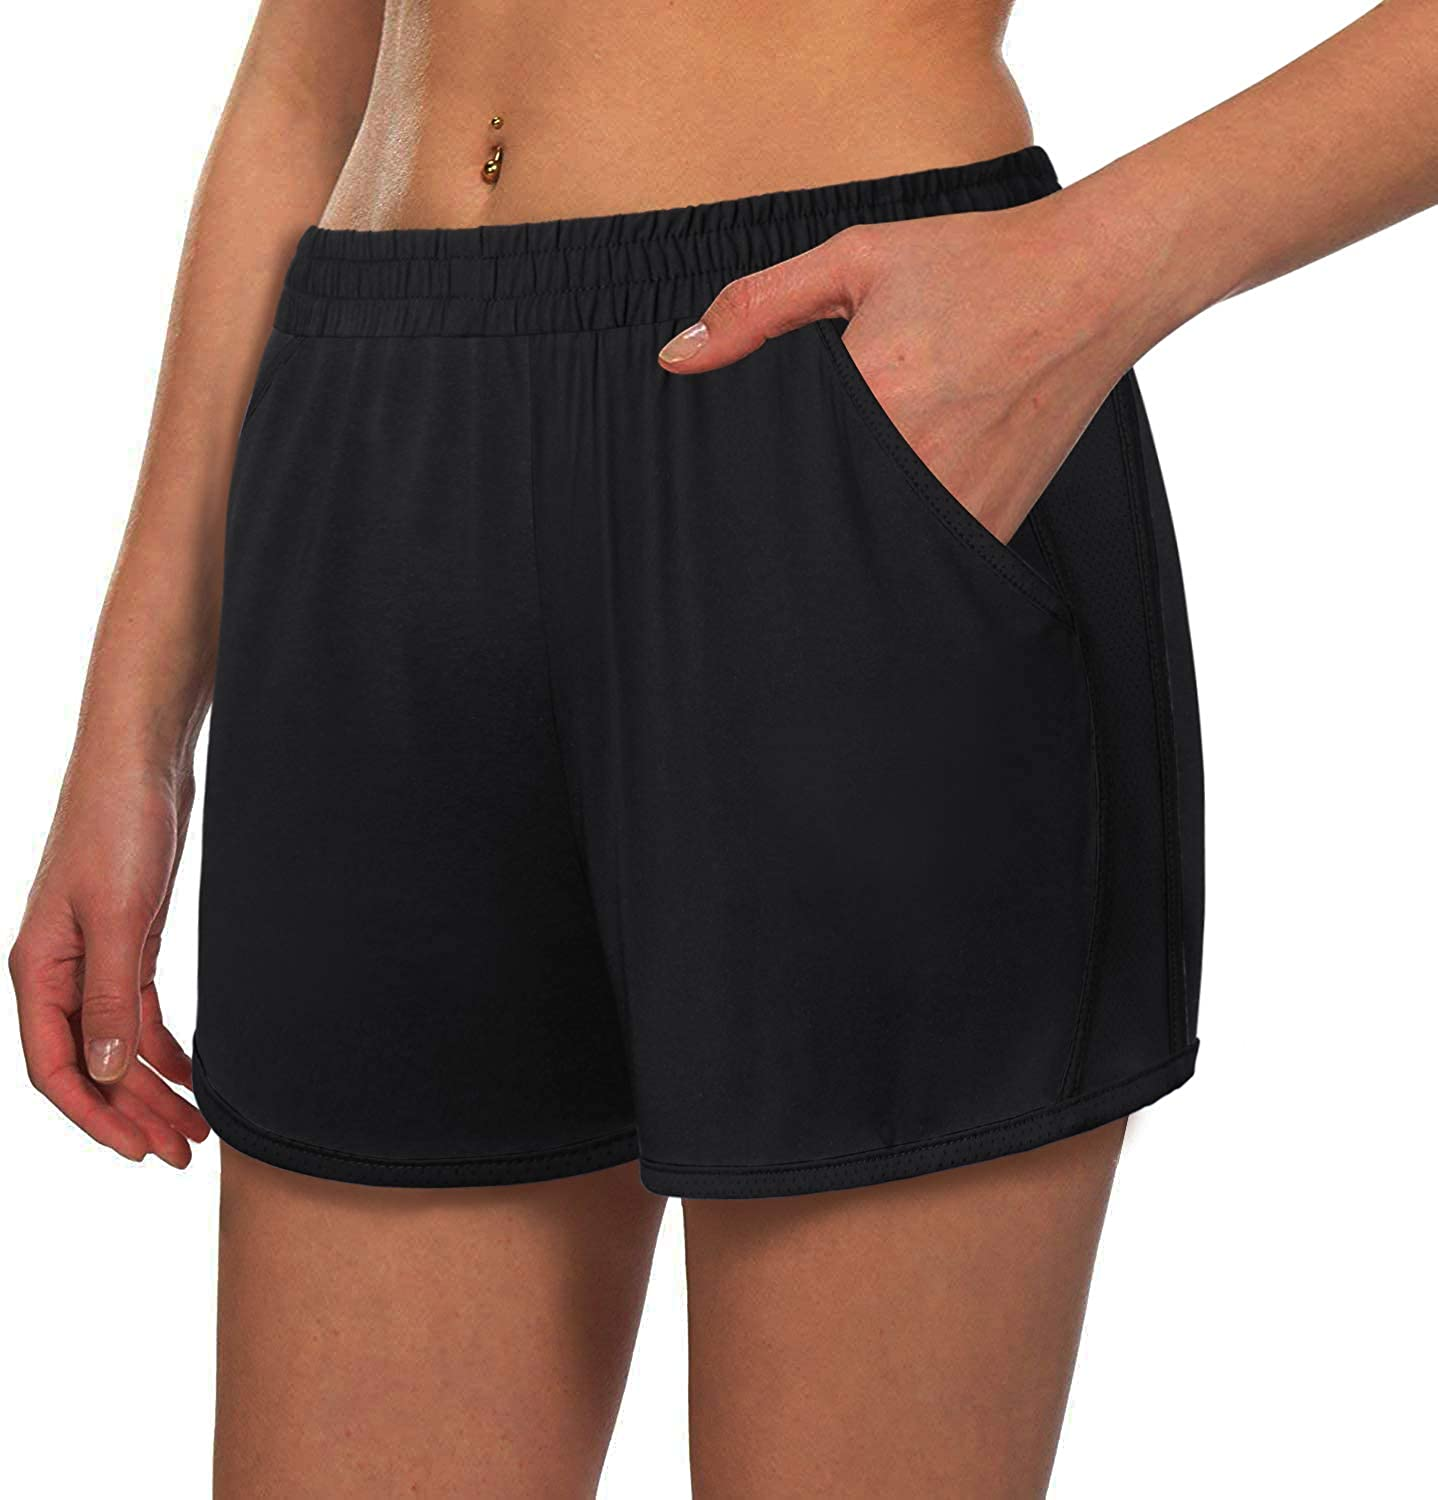 Kimmery Women's Lightweight Patchwork Yoga Double Complete Free Cheap sale Shipping Layers Shorts